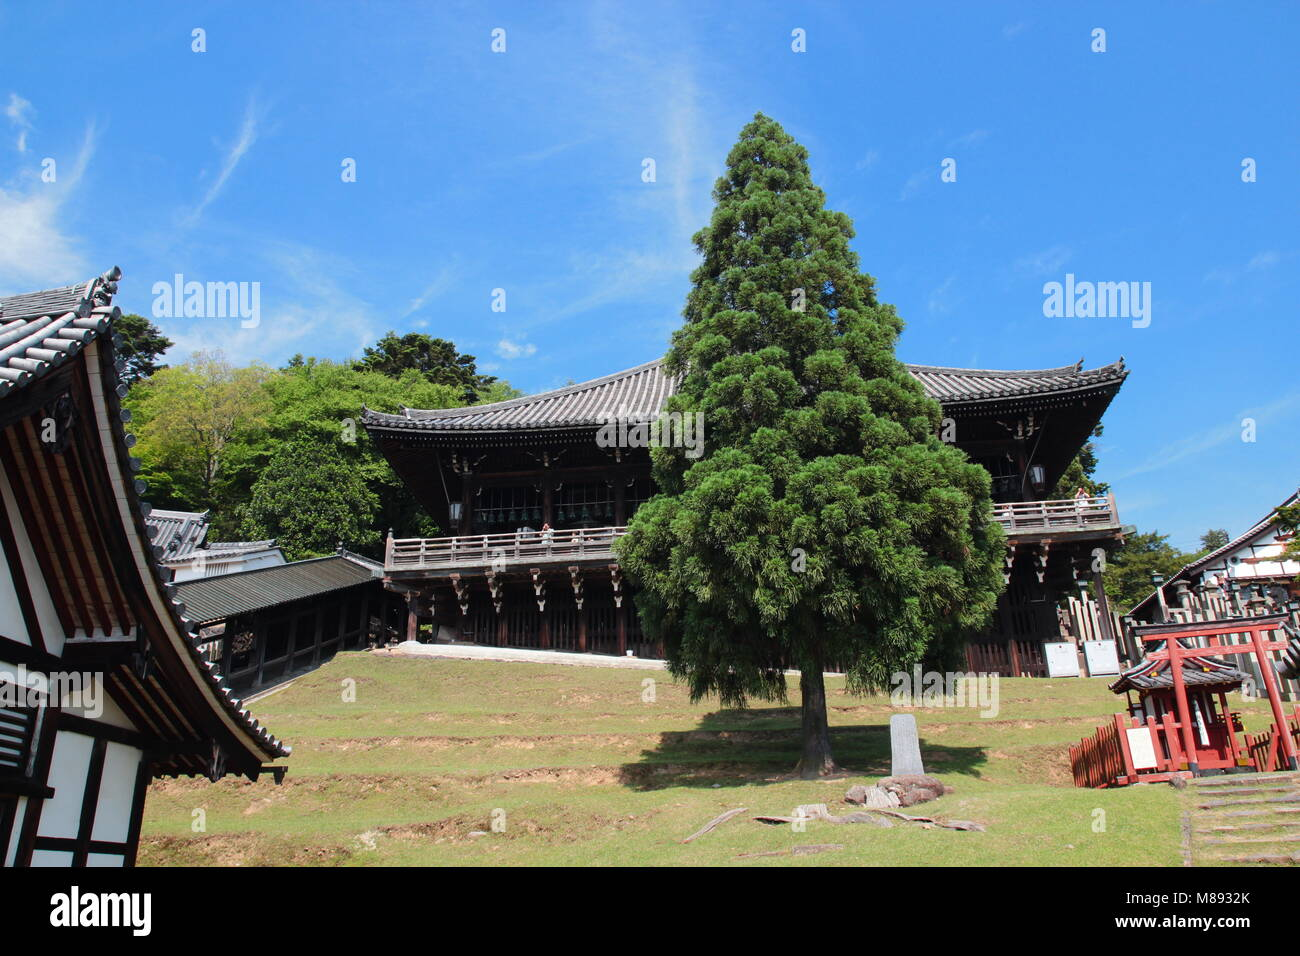 View of amazing ancient architecture of Nigatsu-do Hall above the Todaiji temple complex in Nara, Japan - Stock Image